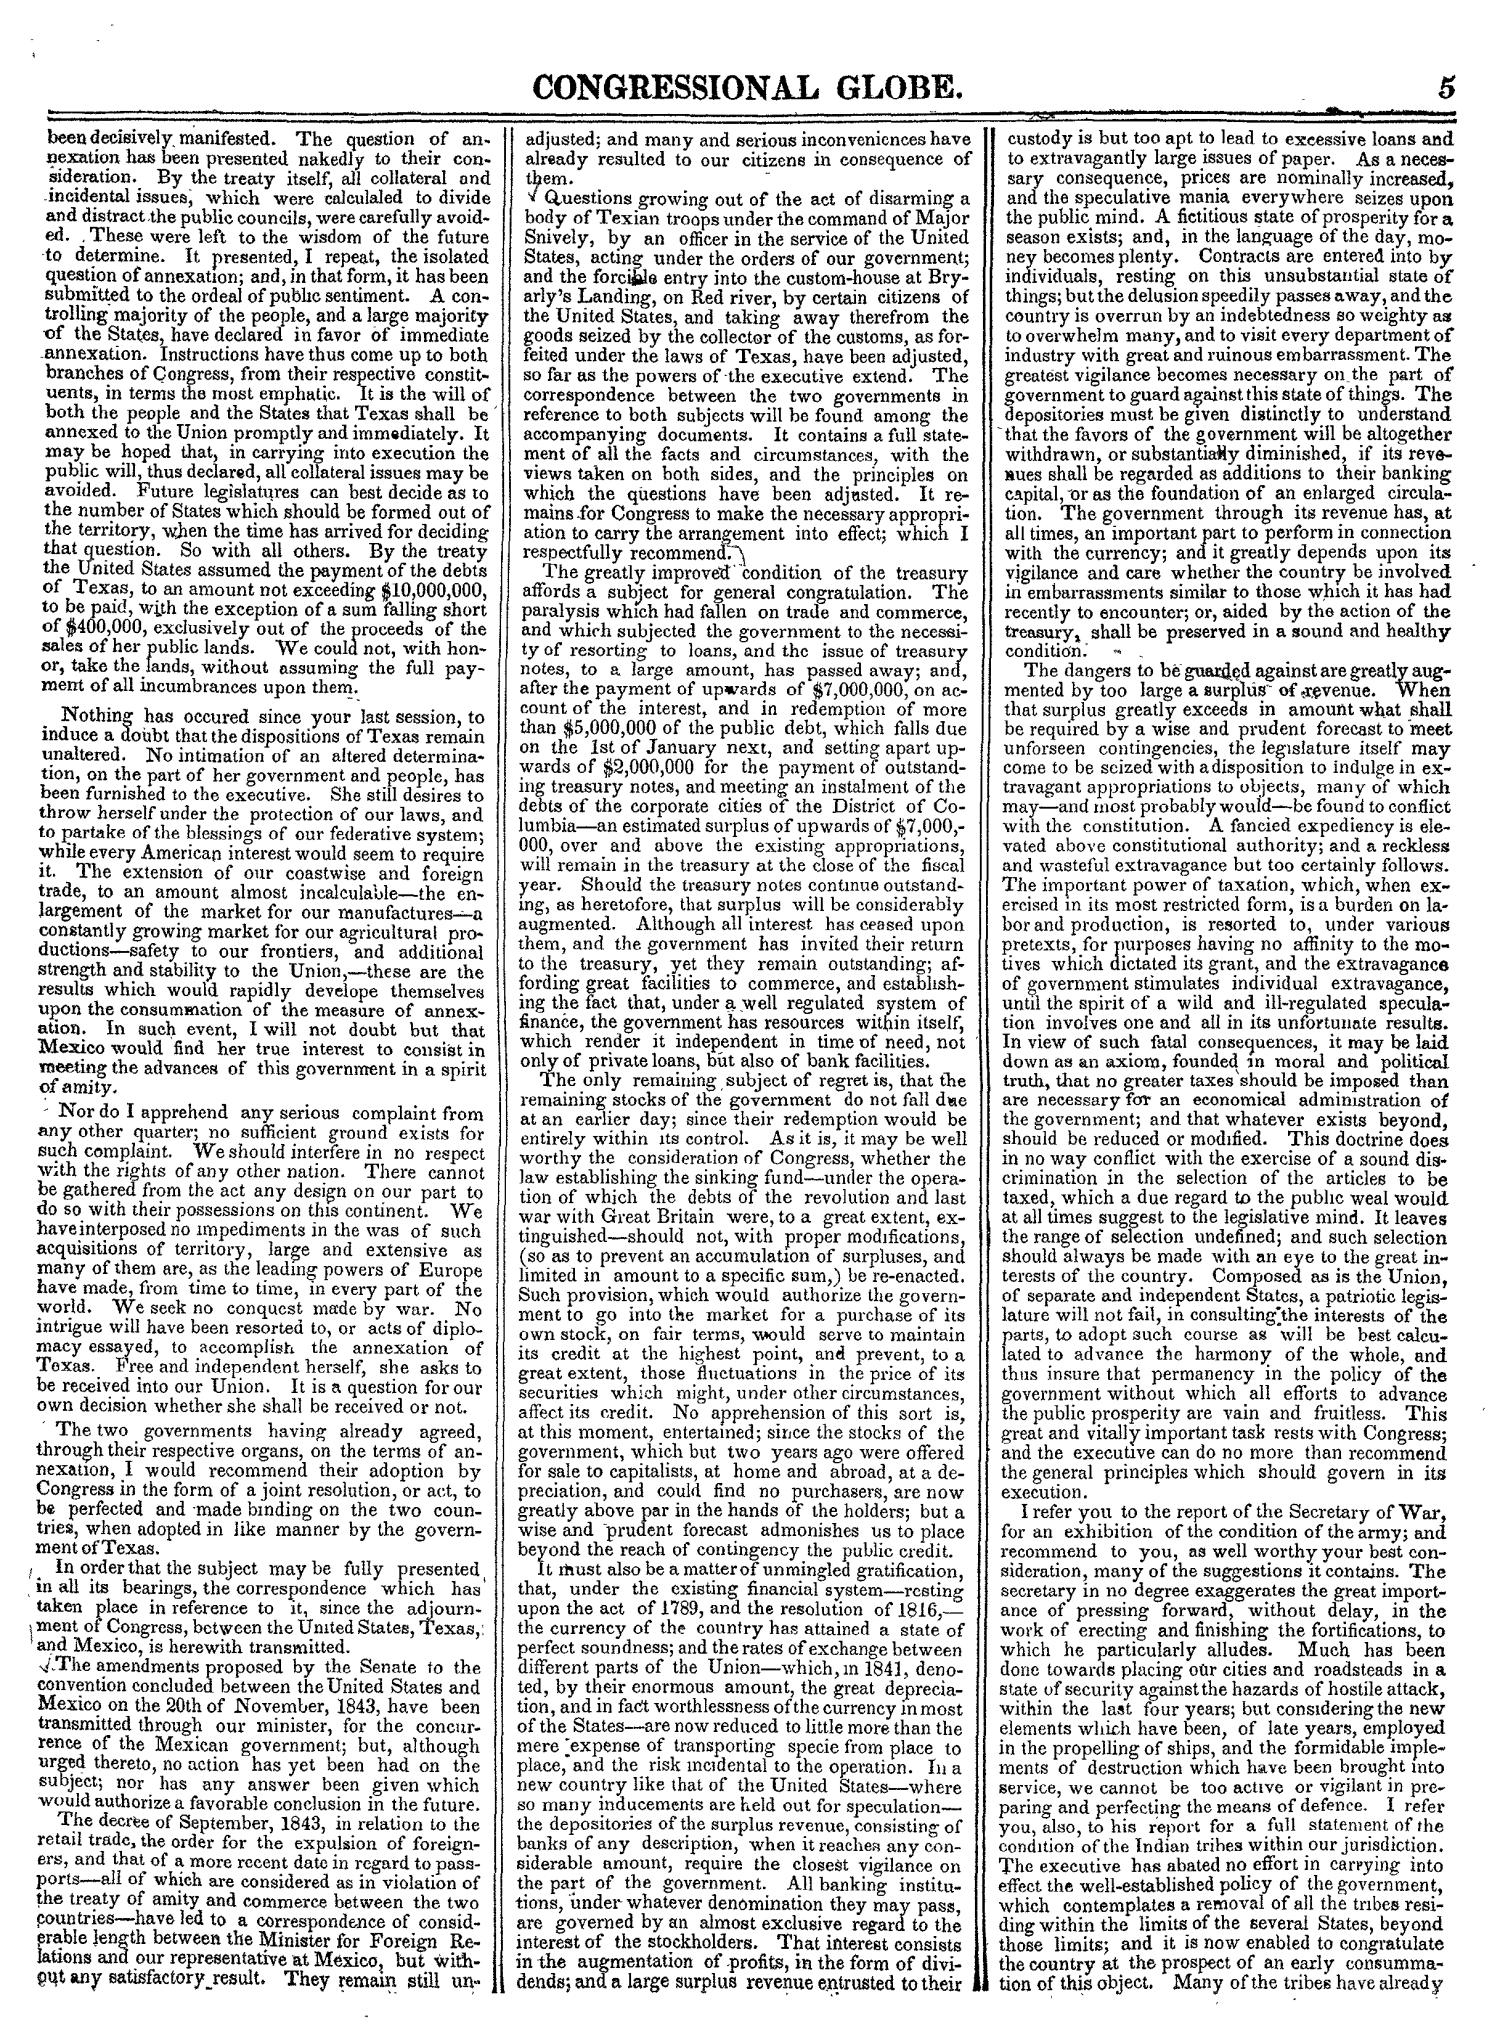 The Congressional Globe, Volume 14: Twenty-Eighth Congress, Second Session                                                                                                      5